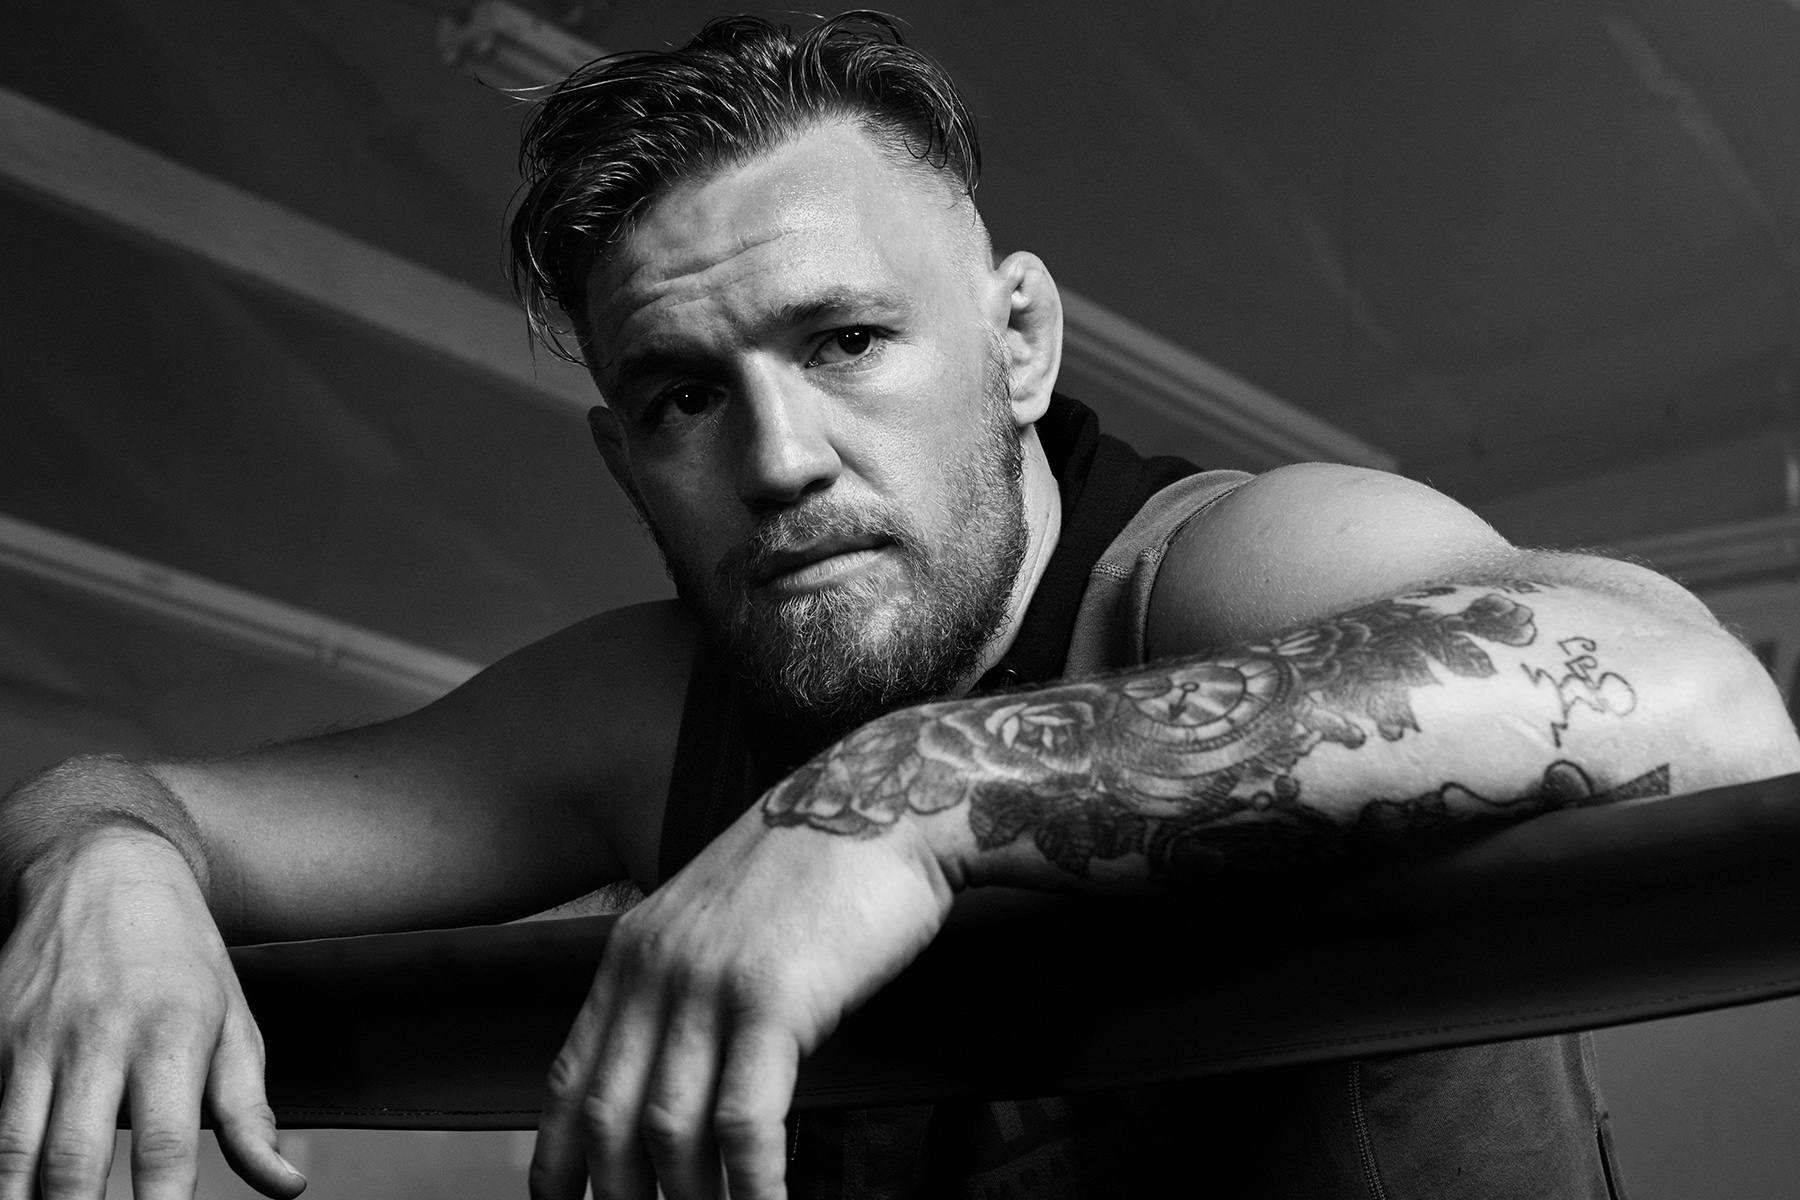 portrait of MMA fighter, Conor McGregor photographed by Scott Council